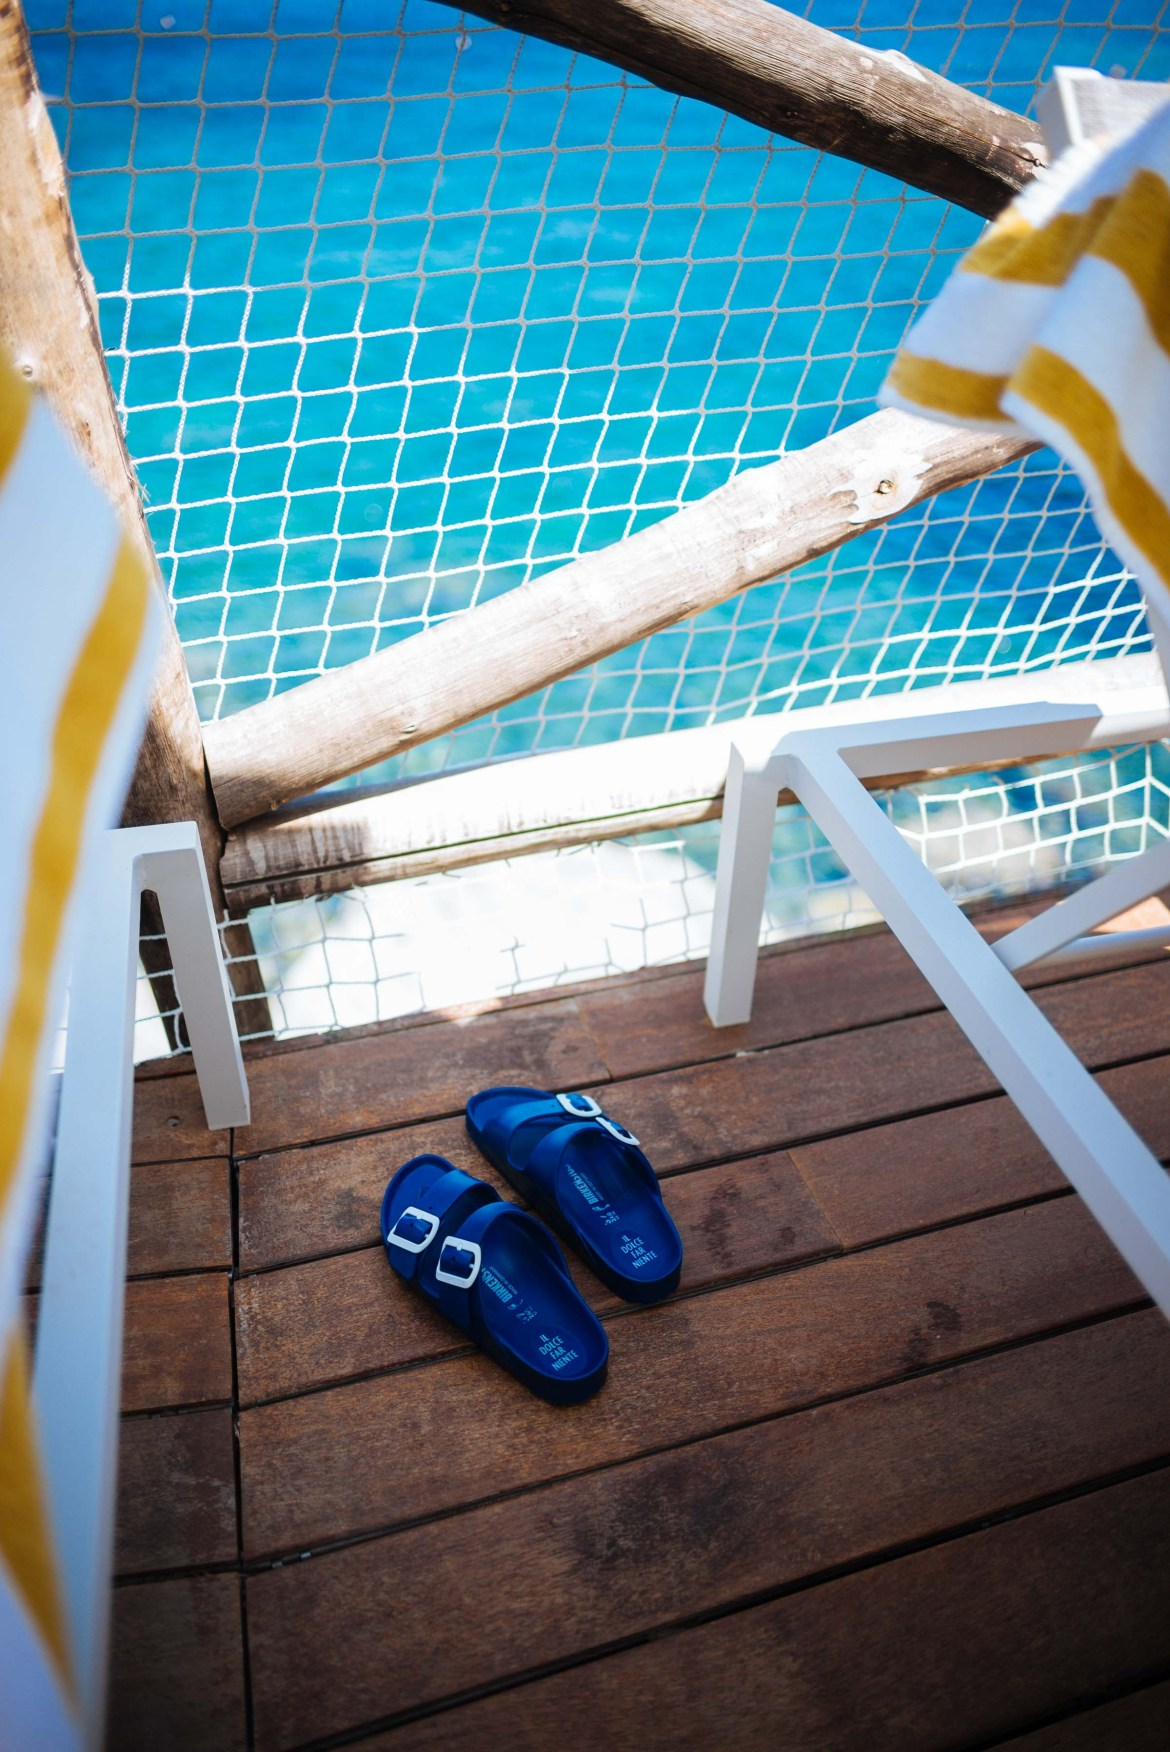 The must-have sandal this summer in Italy's Amalfi Coast. This summer, these chic Il Dolce Far Niente Birkenstocks were all the range in Italy made with navy rubber perfect for the pool or beach.